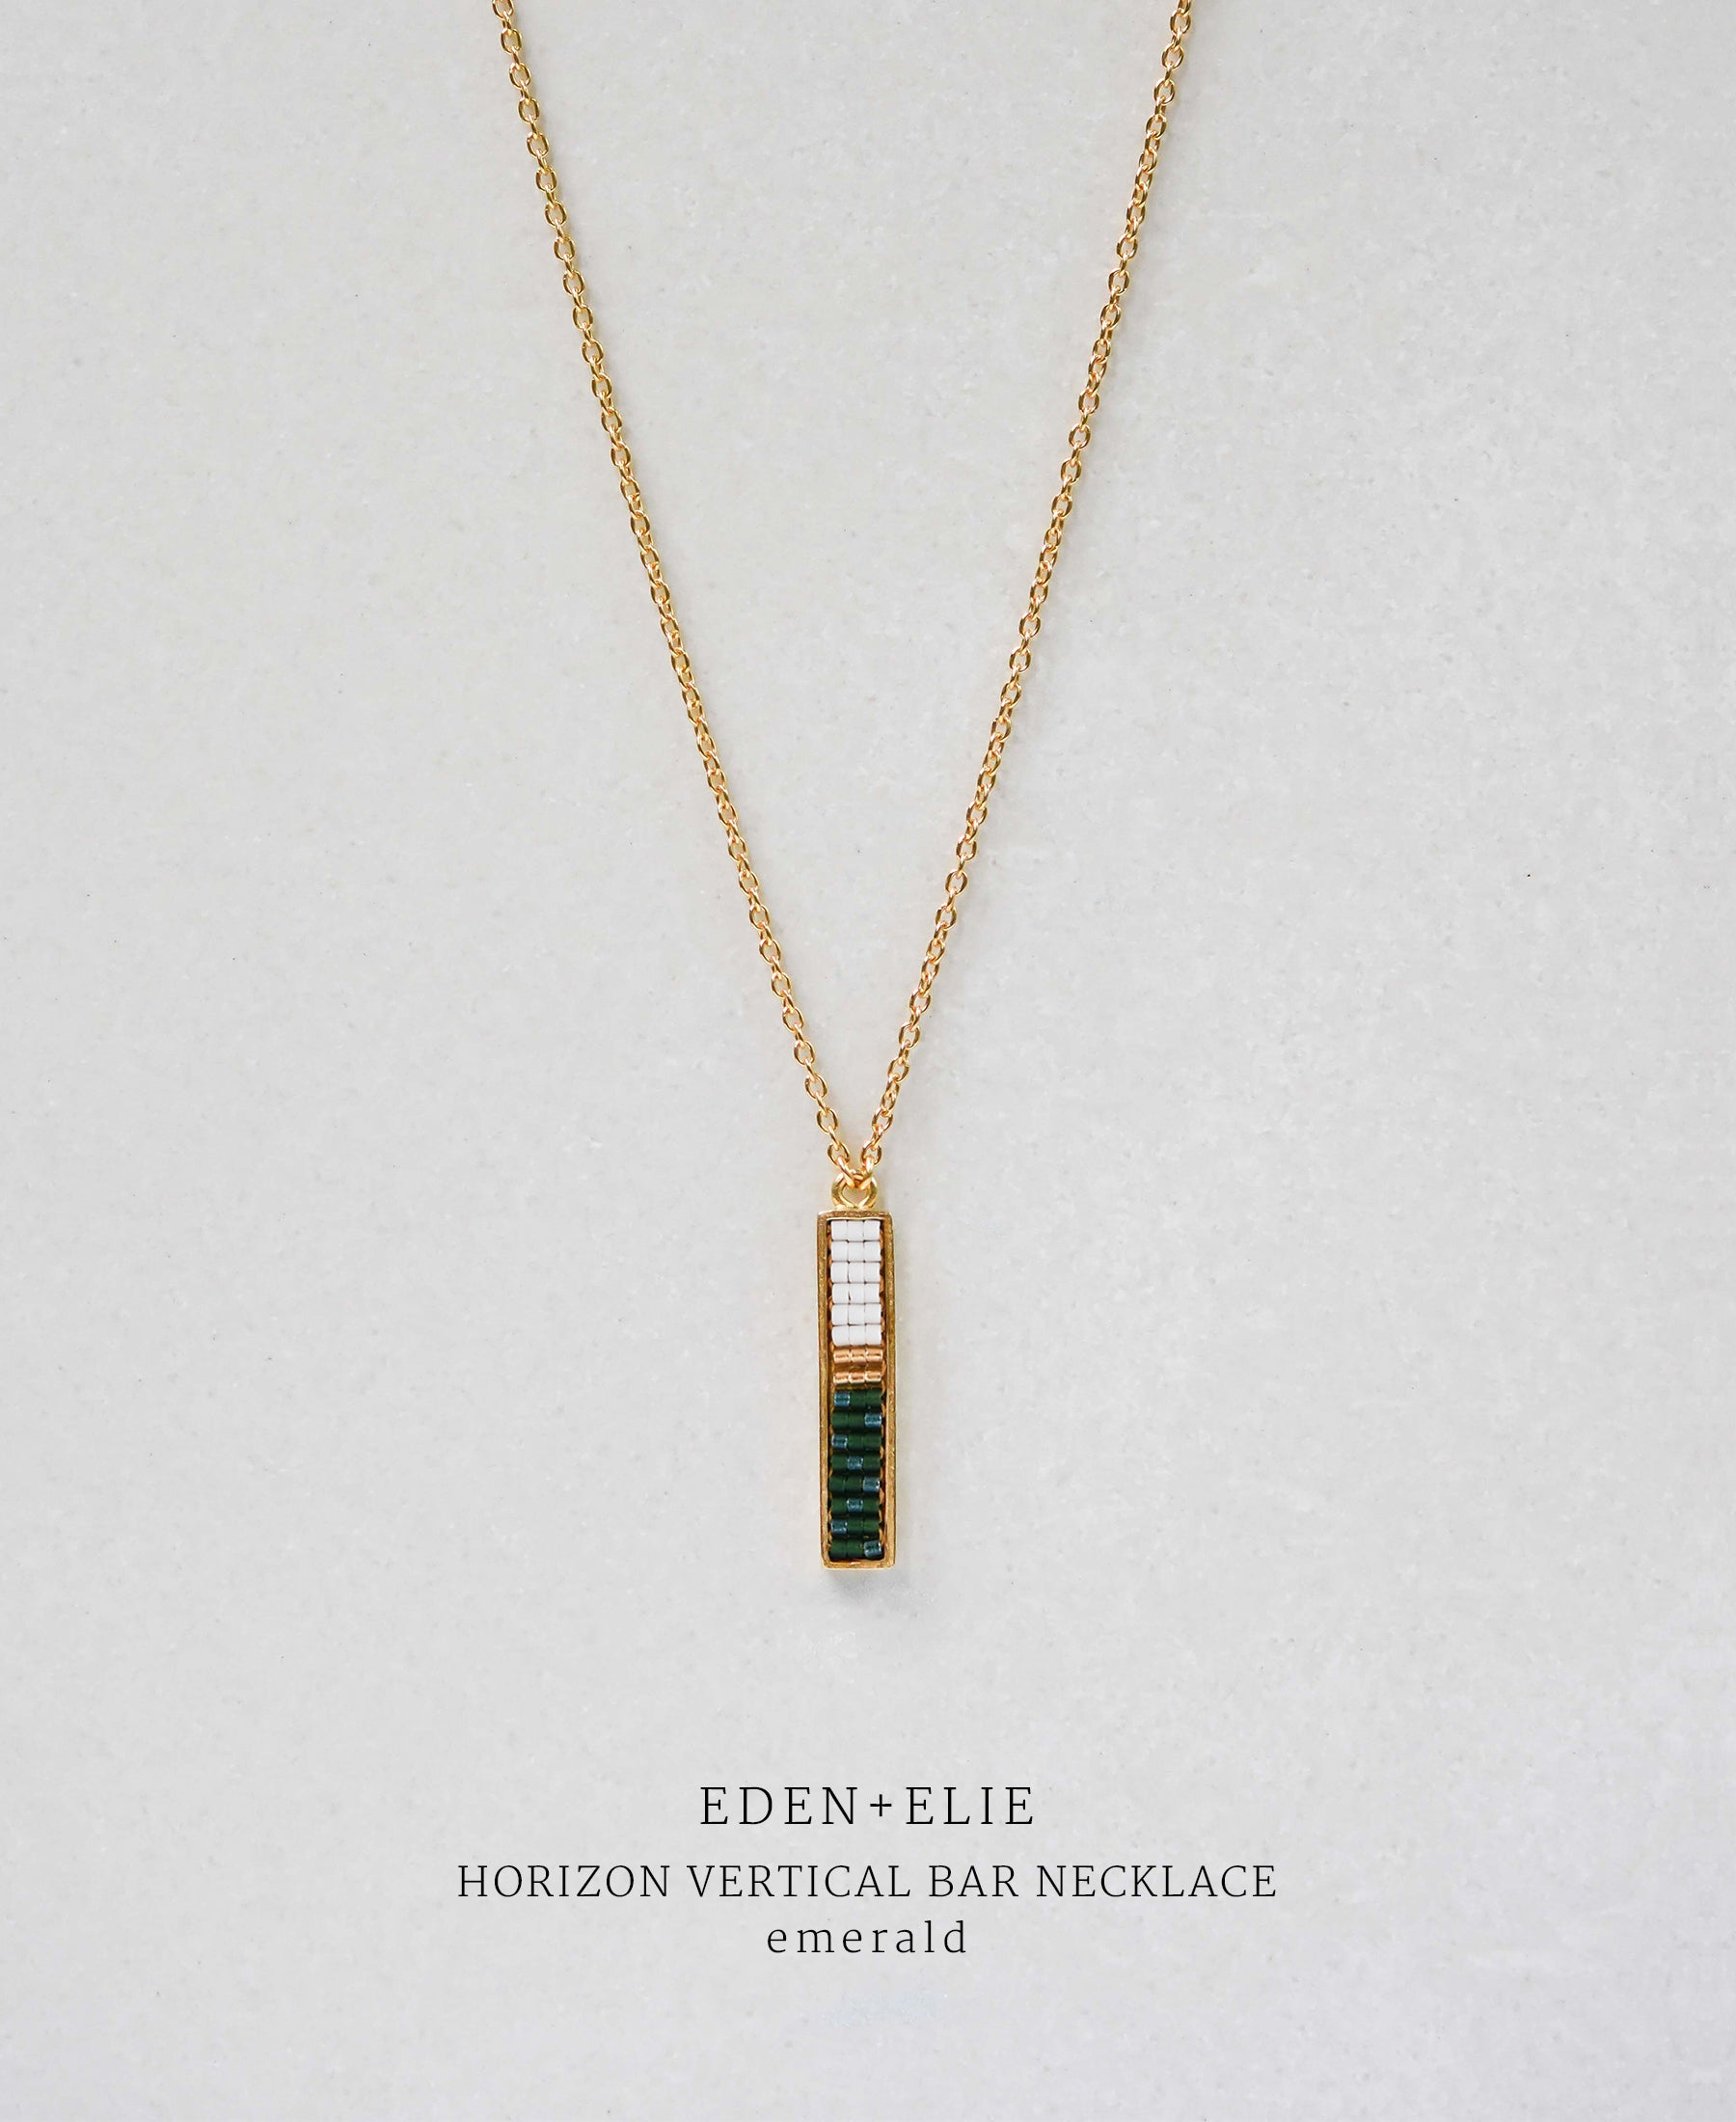 EDEN + ELIE Horizon Vertical bar necklace - emerald green